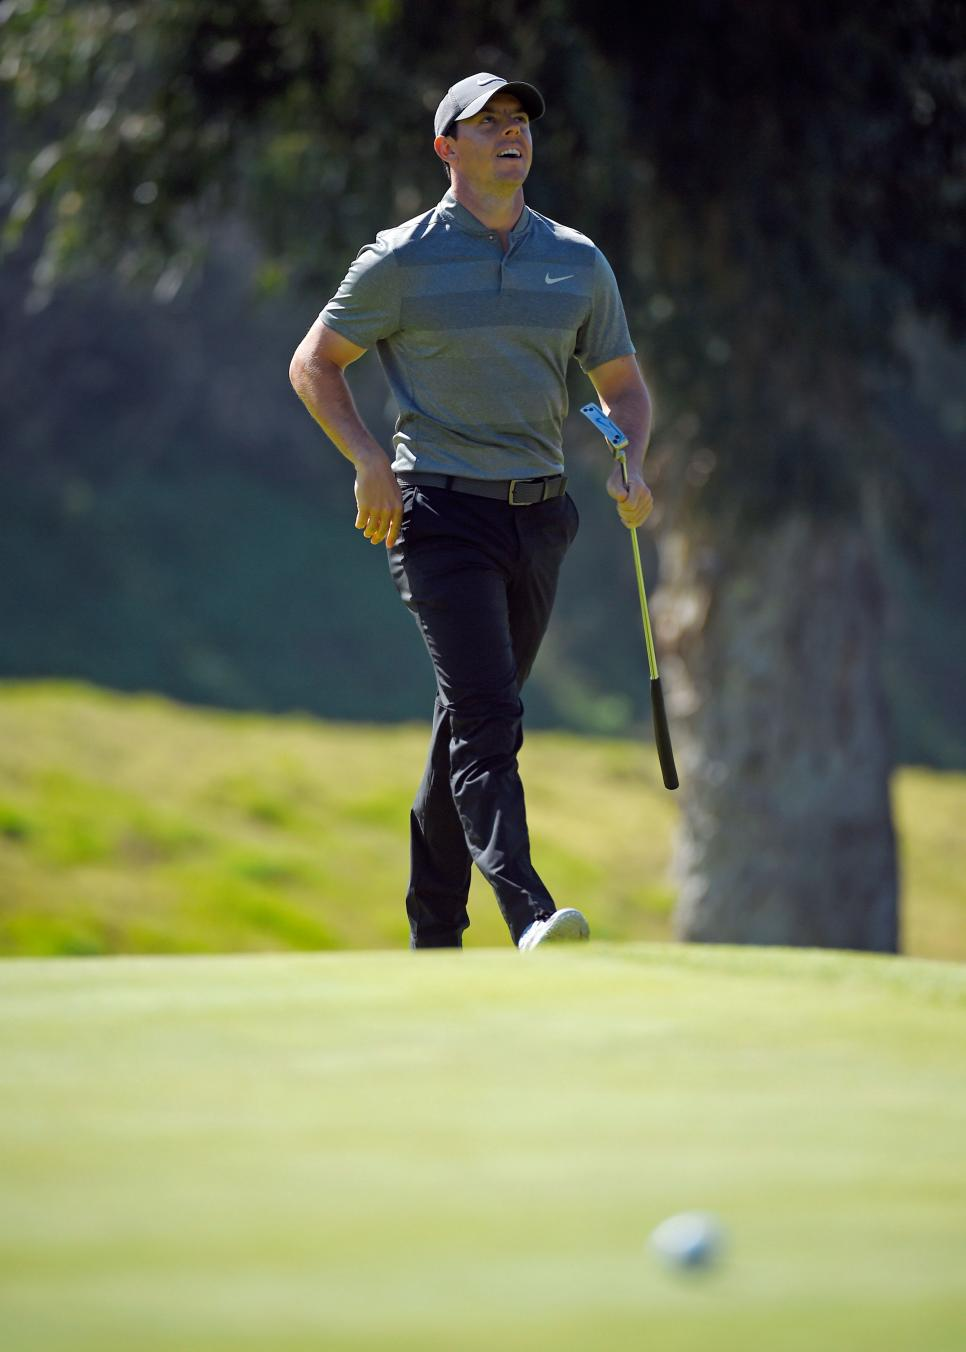 rory-mcilroy-northern-trust-open-disappointed-putting-2016.jpg